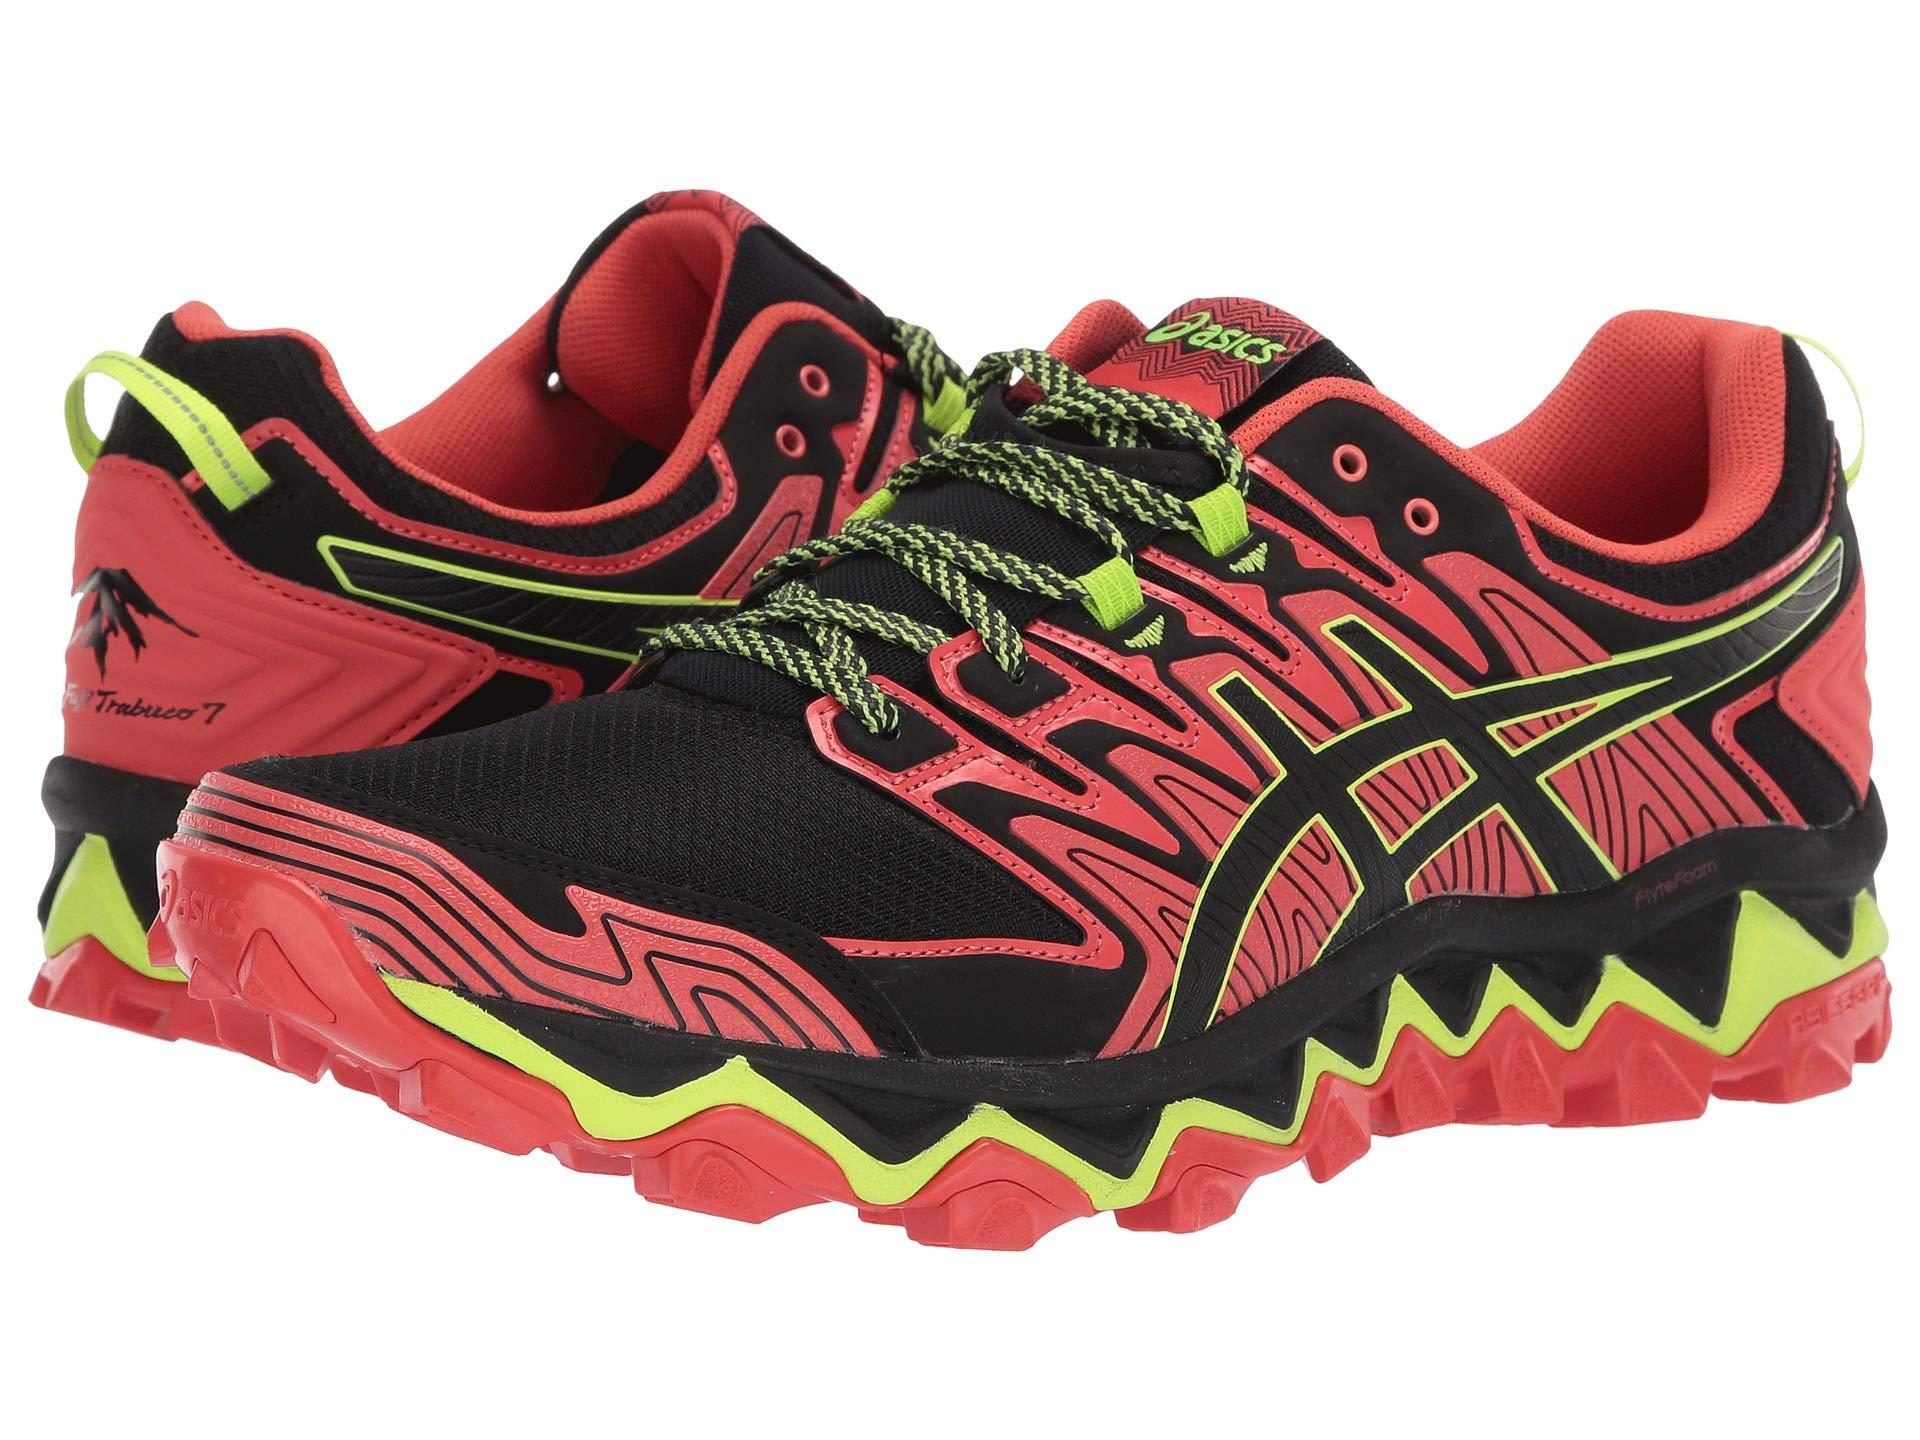 804b874ea77 Lyst - Asics Gel-fujitrabuco 7 Running Shoes in Red for Men